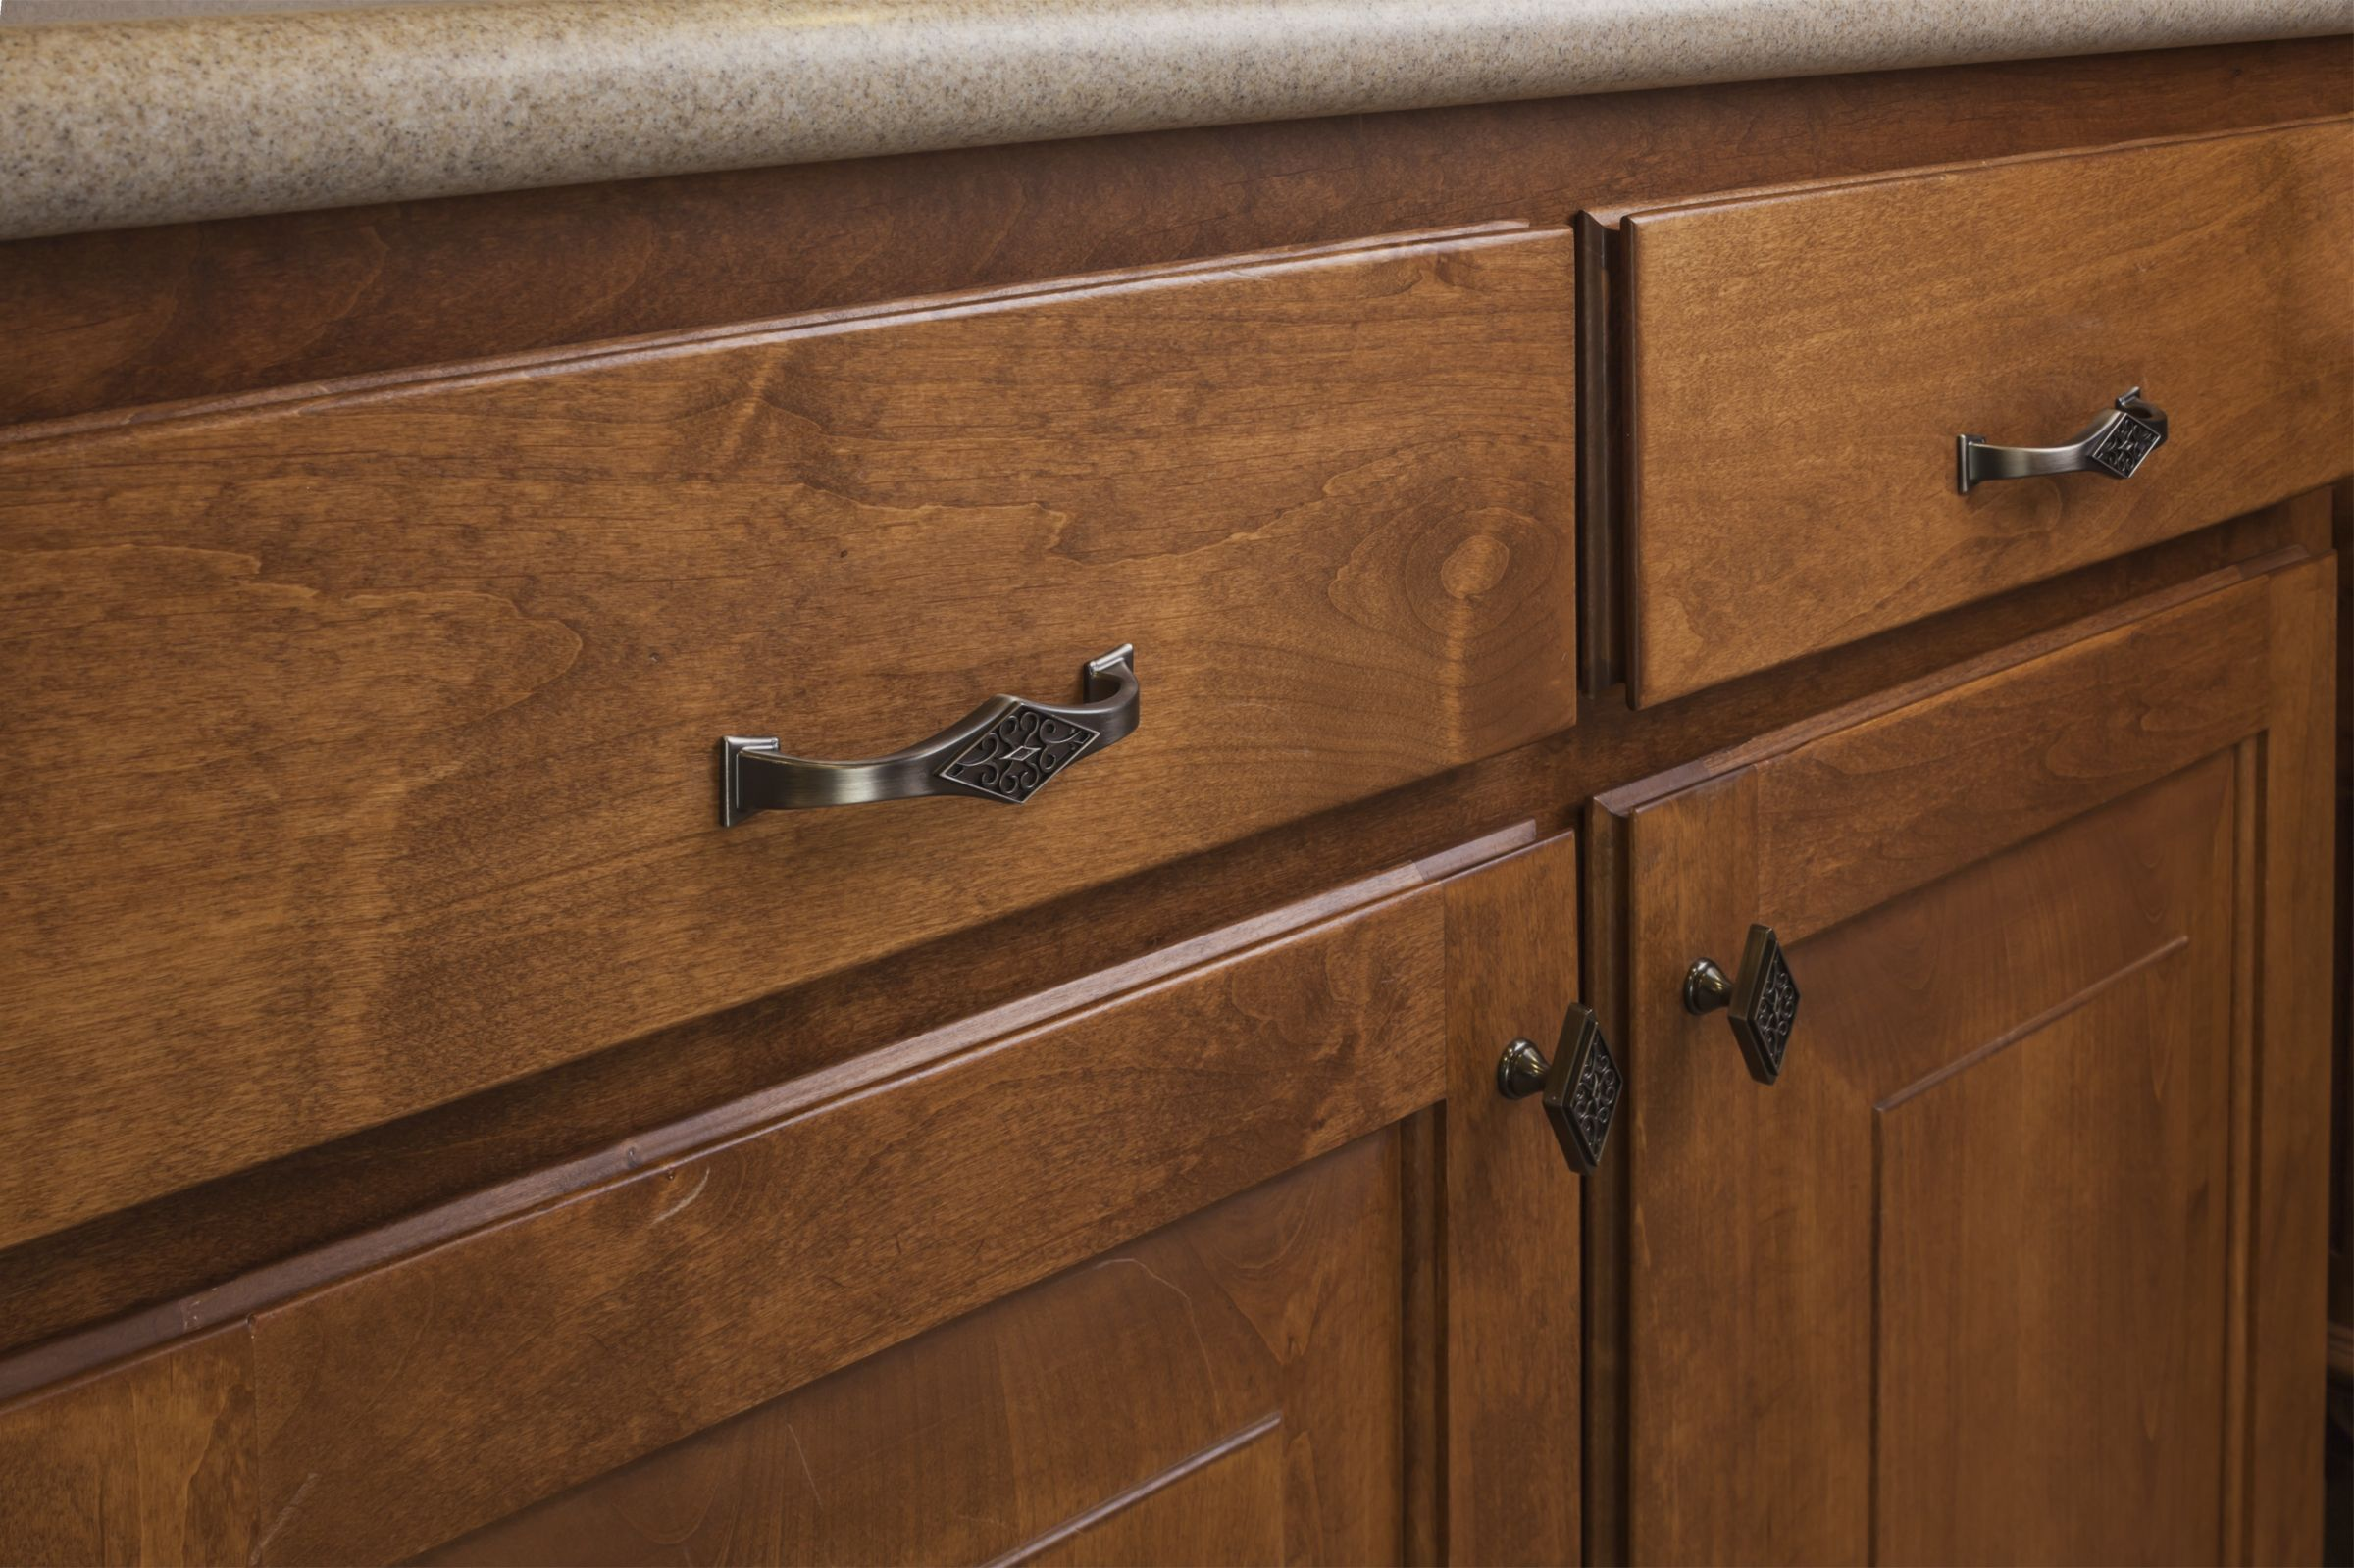 Marvella cabinet knobs and pulls from Jeffrey Alexander by Hardware